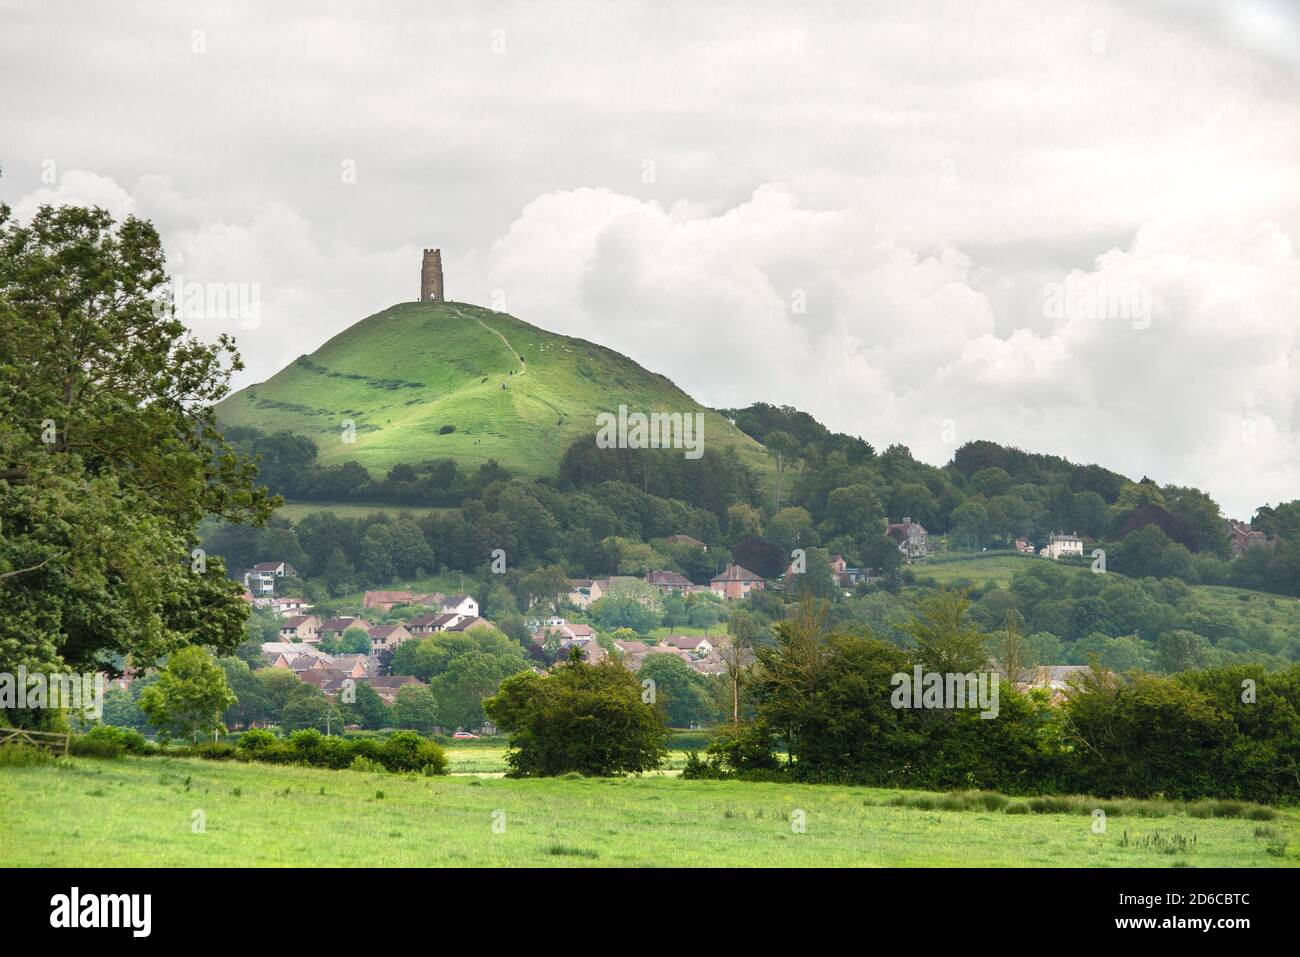 Fluffy white clouds frame Glastonbury Tor in the summer. Farmland frames the foreground, with the red roofs of Glastonbury town in the center valley. Stock Photo